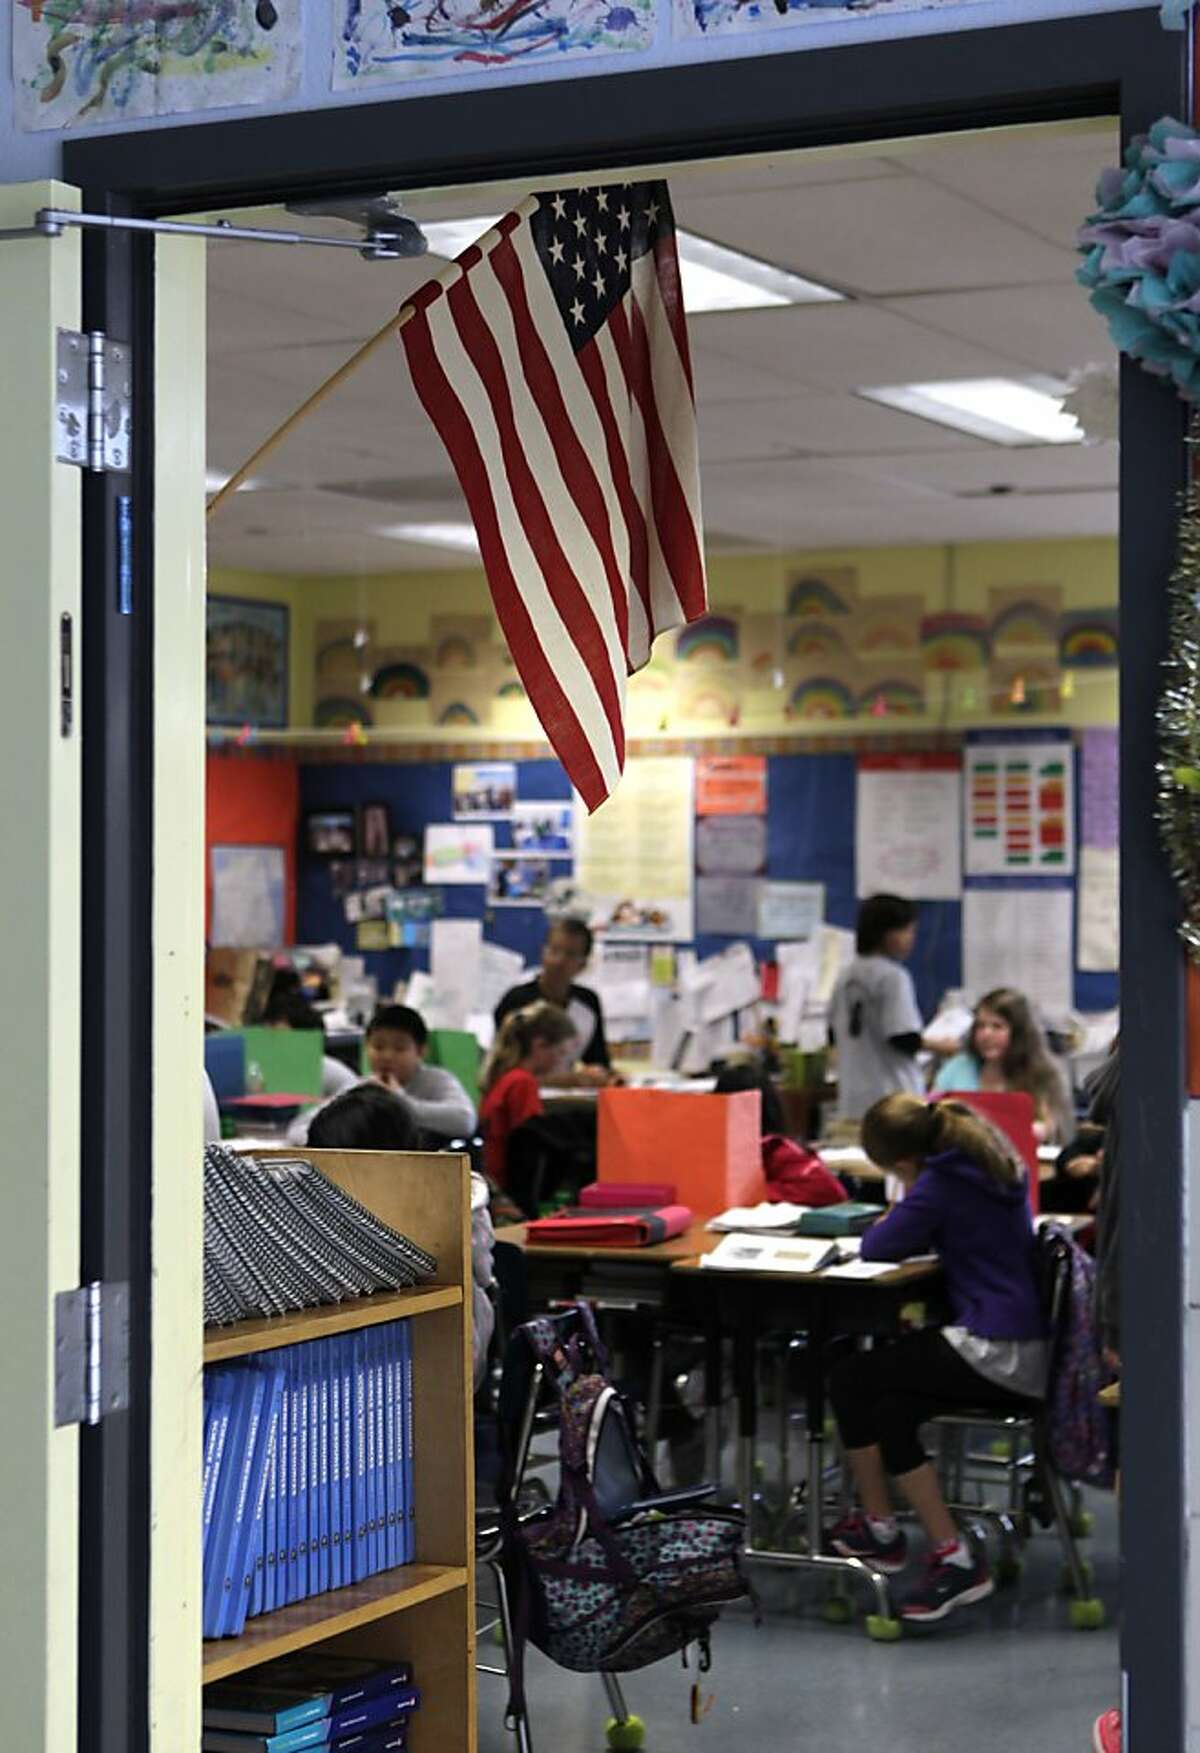 The U.S. flag hangs in David Allyn's 5th-grade classroom at Argonne Elementary School in San Francisco, Calif. on Friday, March 15, 2013. Students at Argonne recite the Pledge of Allegiance during bi-weekly assemblies on the schoolyard.